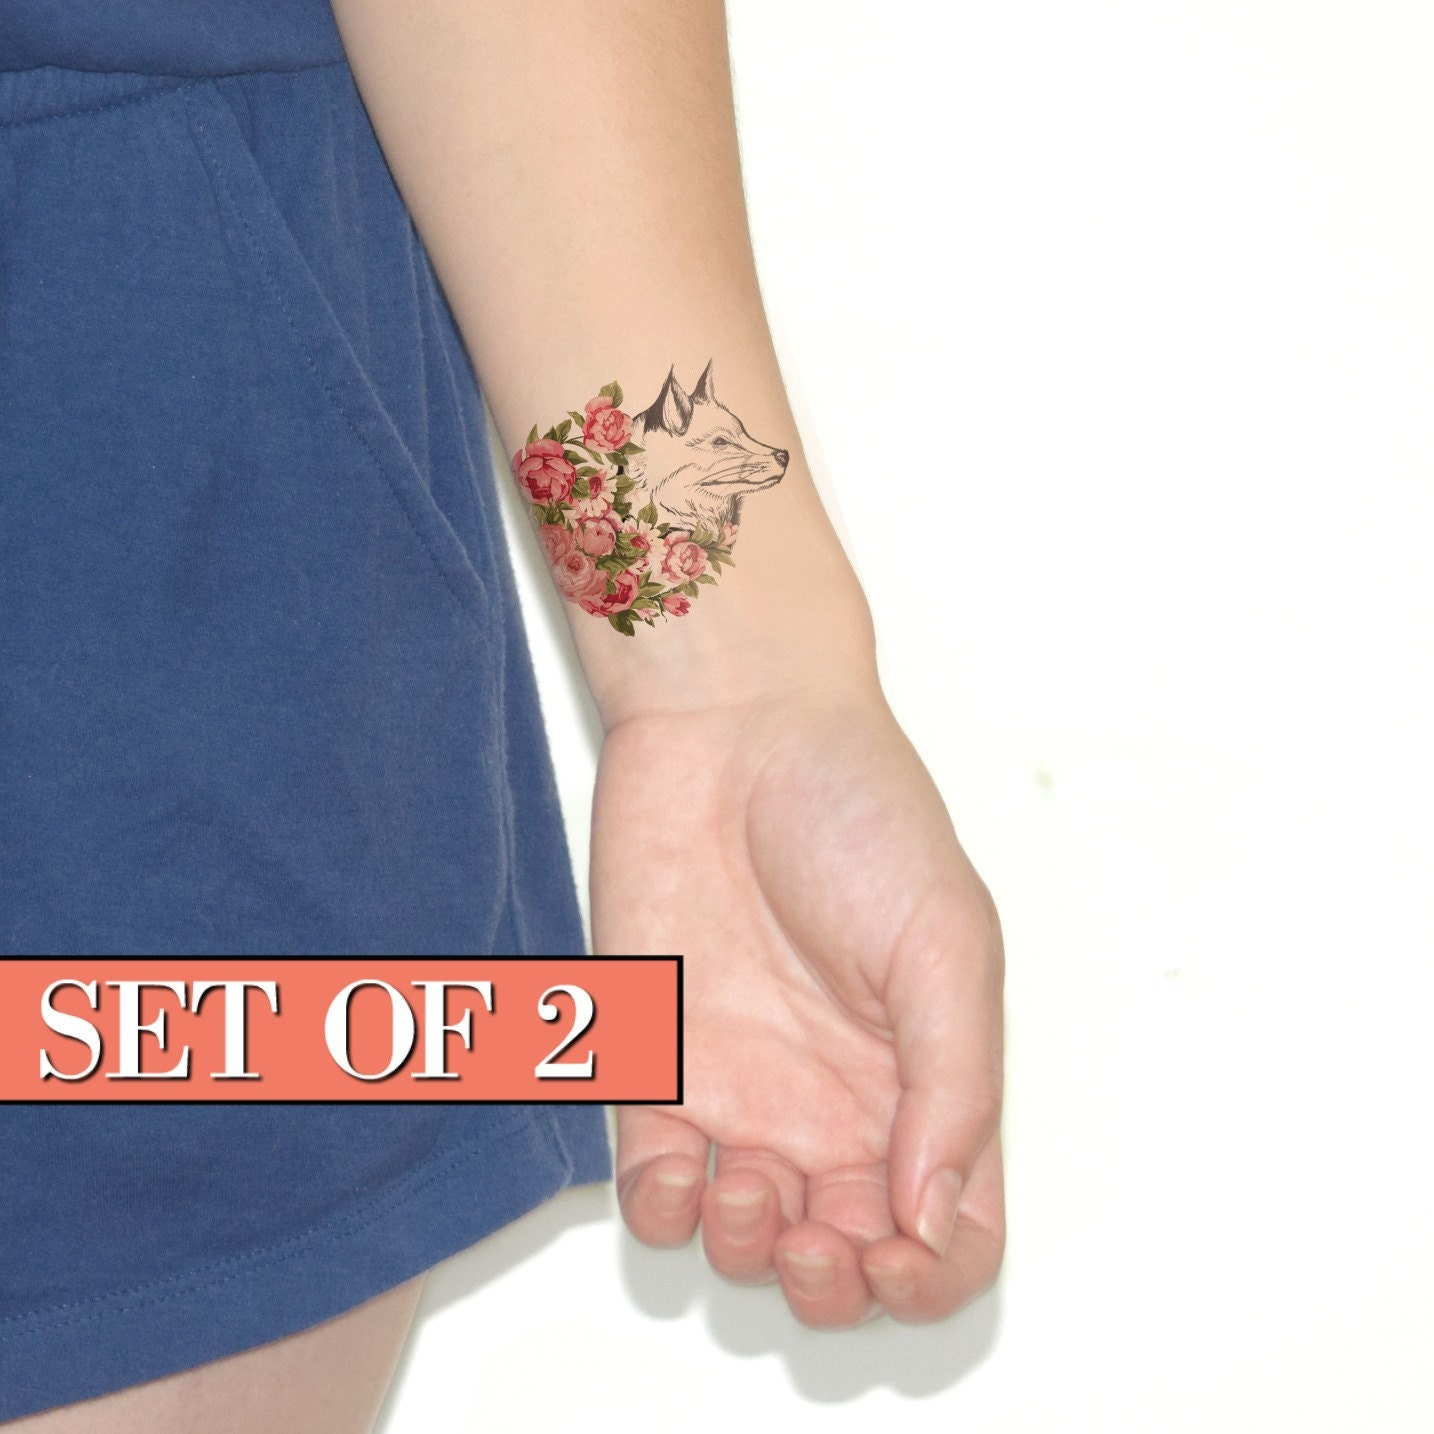 Temporary Tattoo Ink: Floral Fox Temporary Tattoo Ink Flower Blue Vintage By